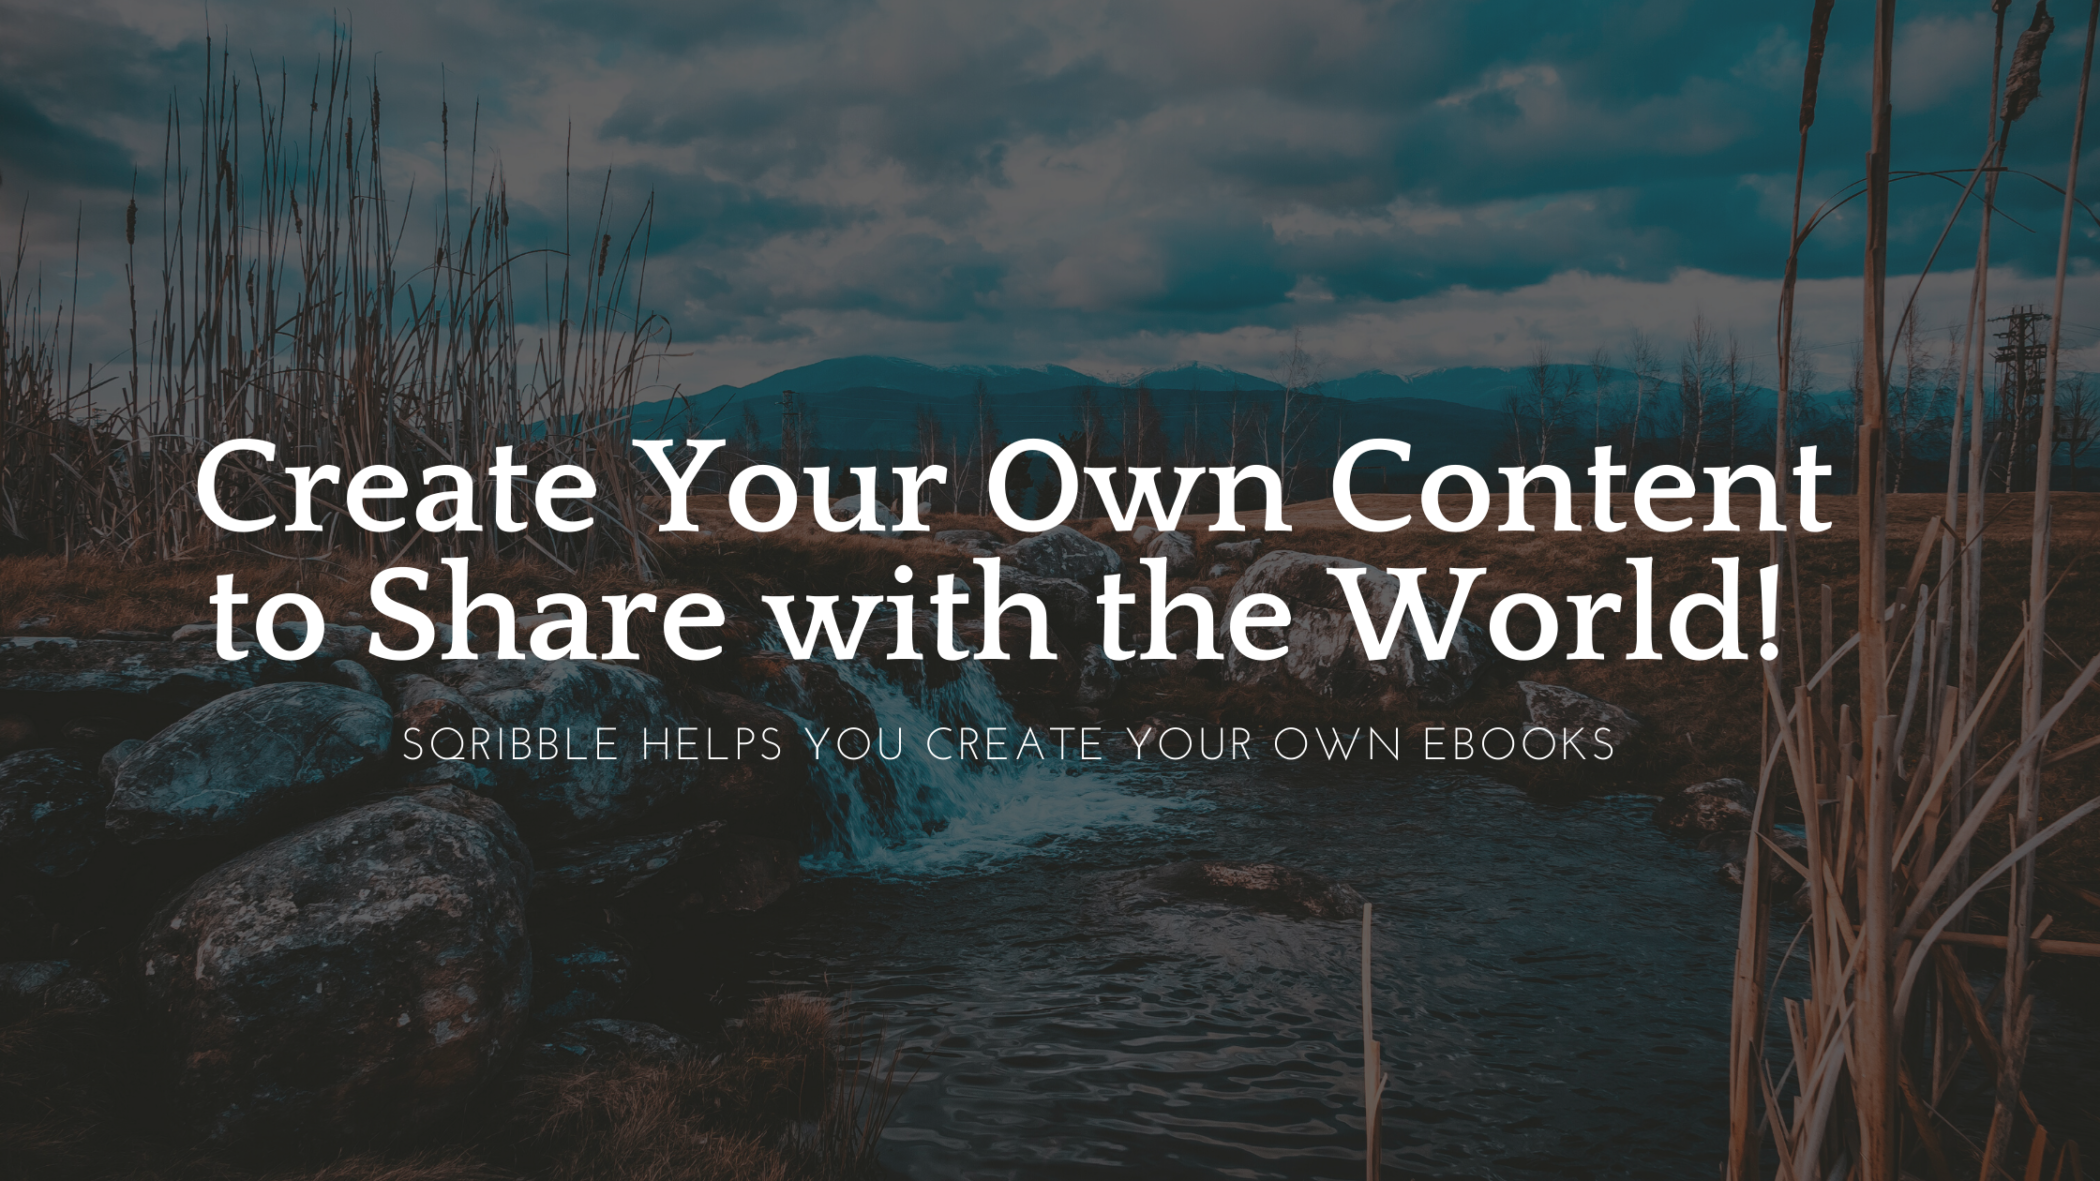 Sqribble helps You Create Your Own eBooks